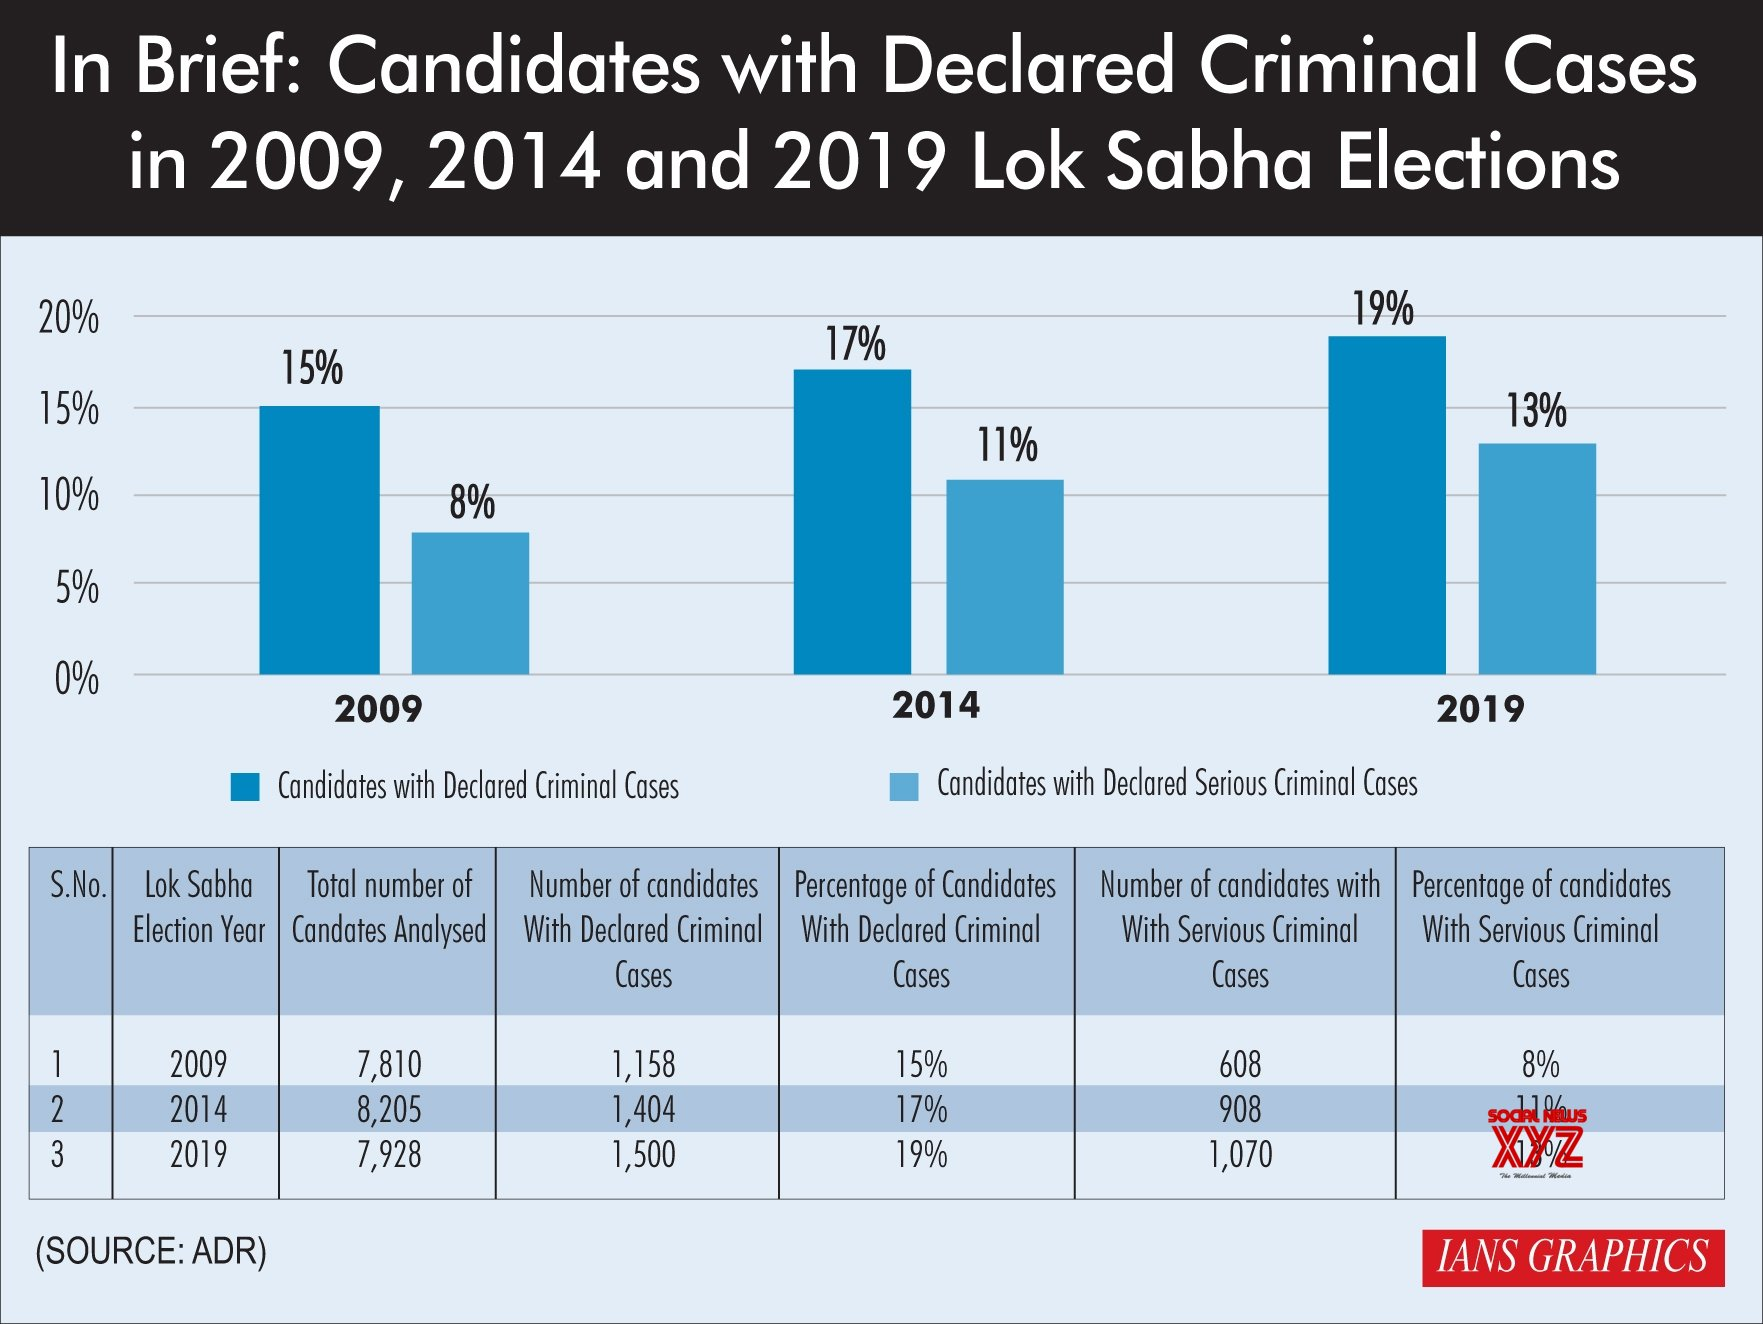 Infographics: In Brief: Candidates with Declared Criminal Cases in 2009, 2014 and 2019 Lok Sabha Elections #Gallery